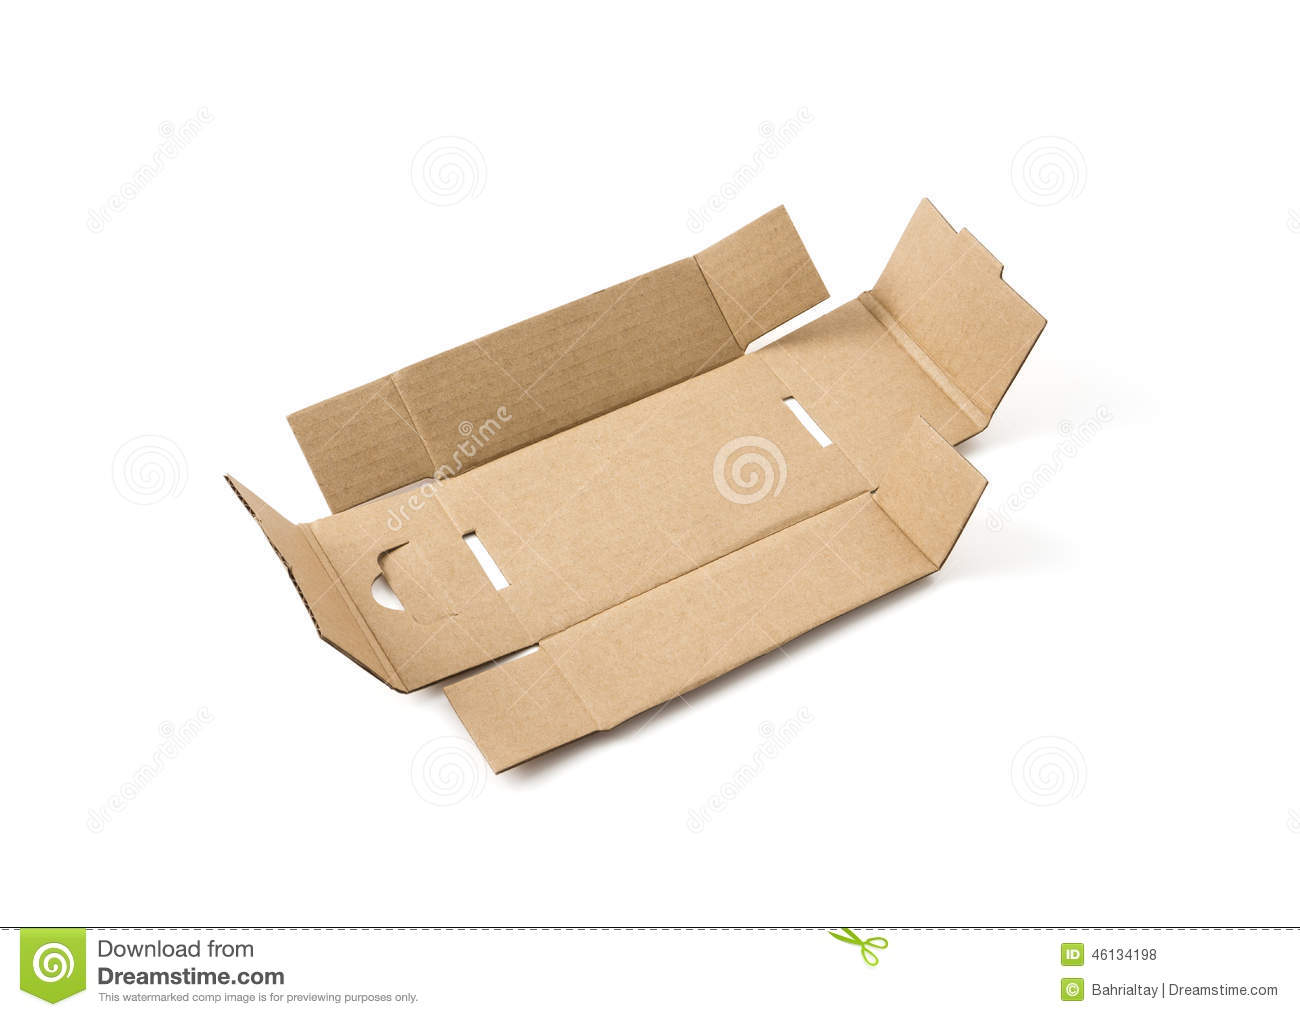 Unfolded box clipart.